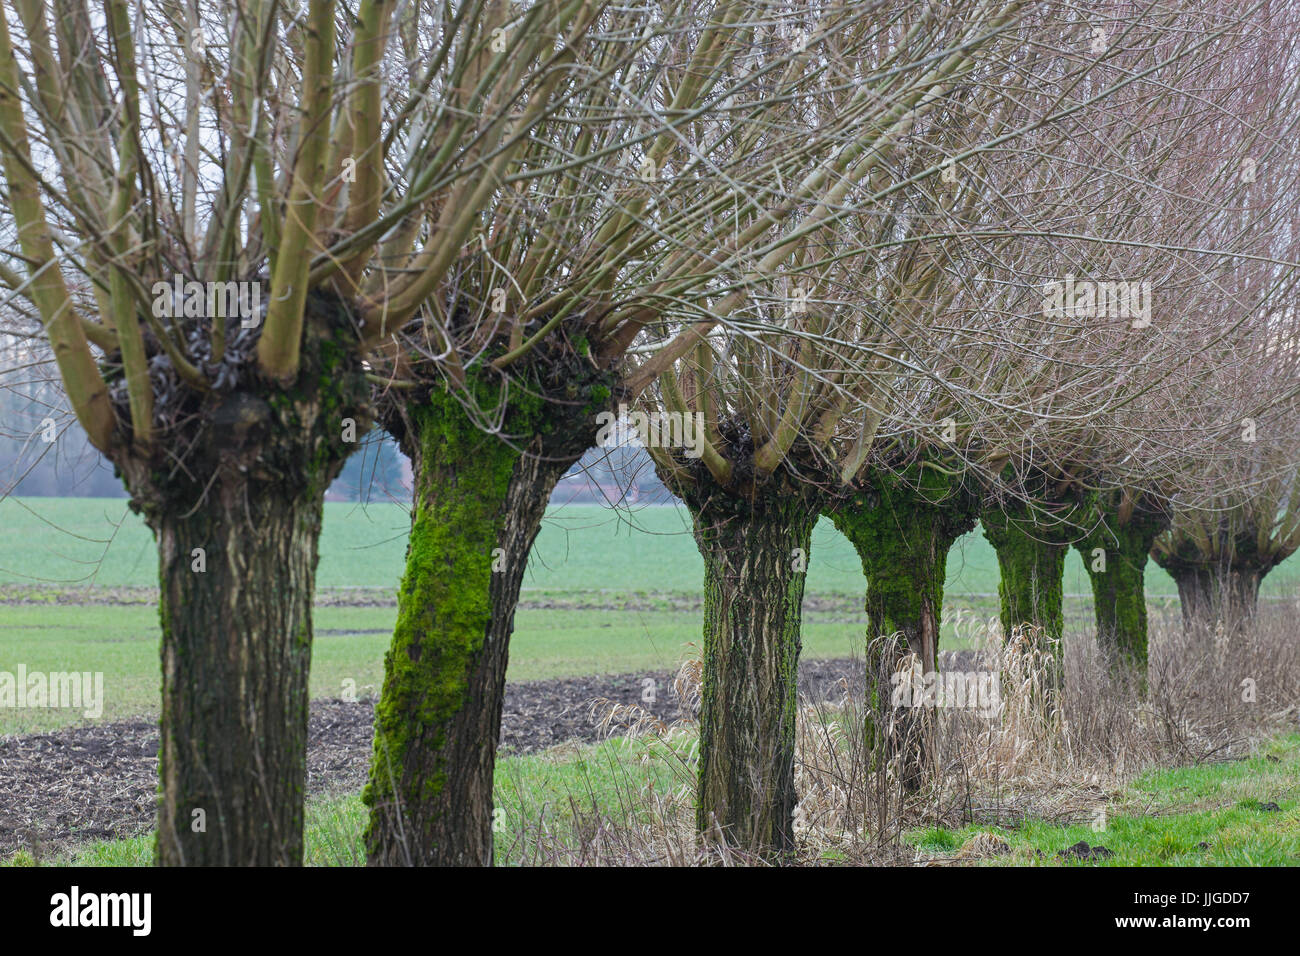 Row of pollarded white willows (Salix alba) bordering field in winter - Stock Image